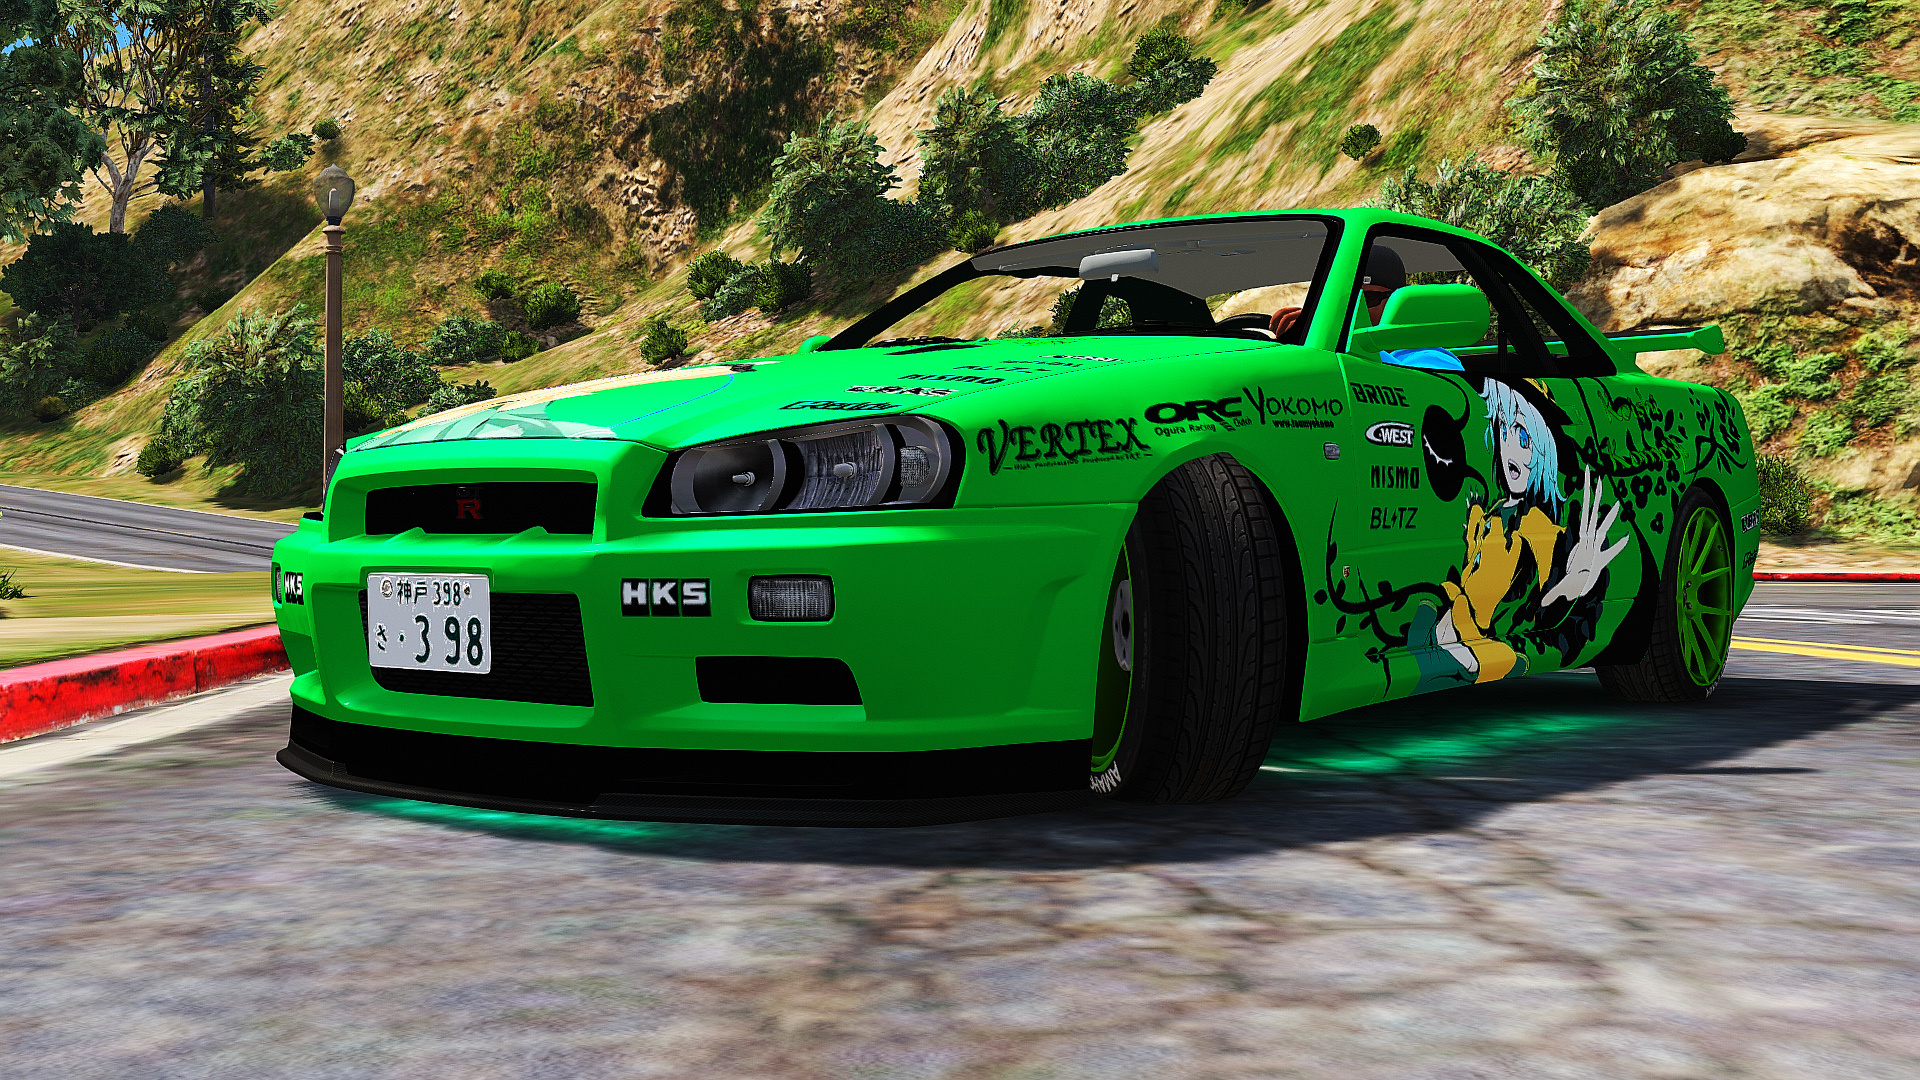 nissan skyline gt r bnr34 itasha livery gta5. Black Bedroom Furniture Sets. Home Design Ideas